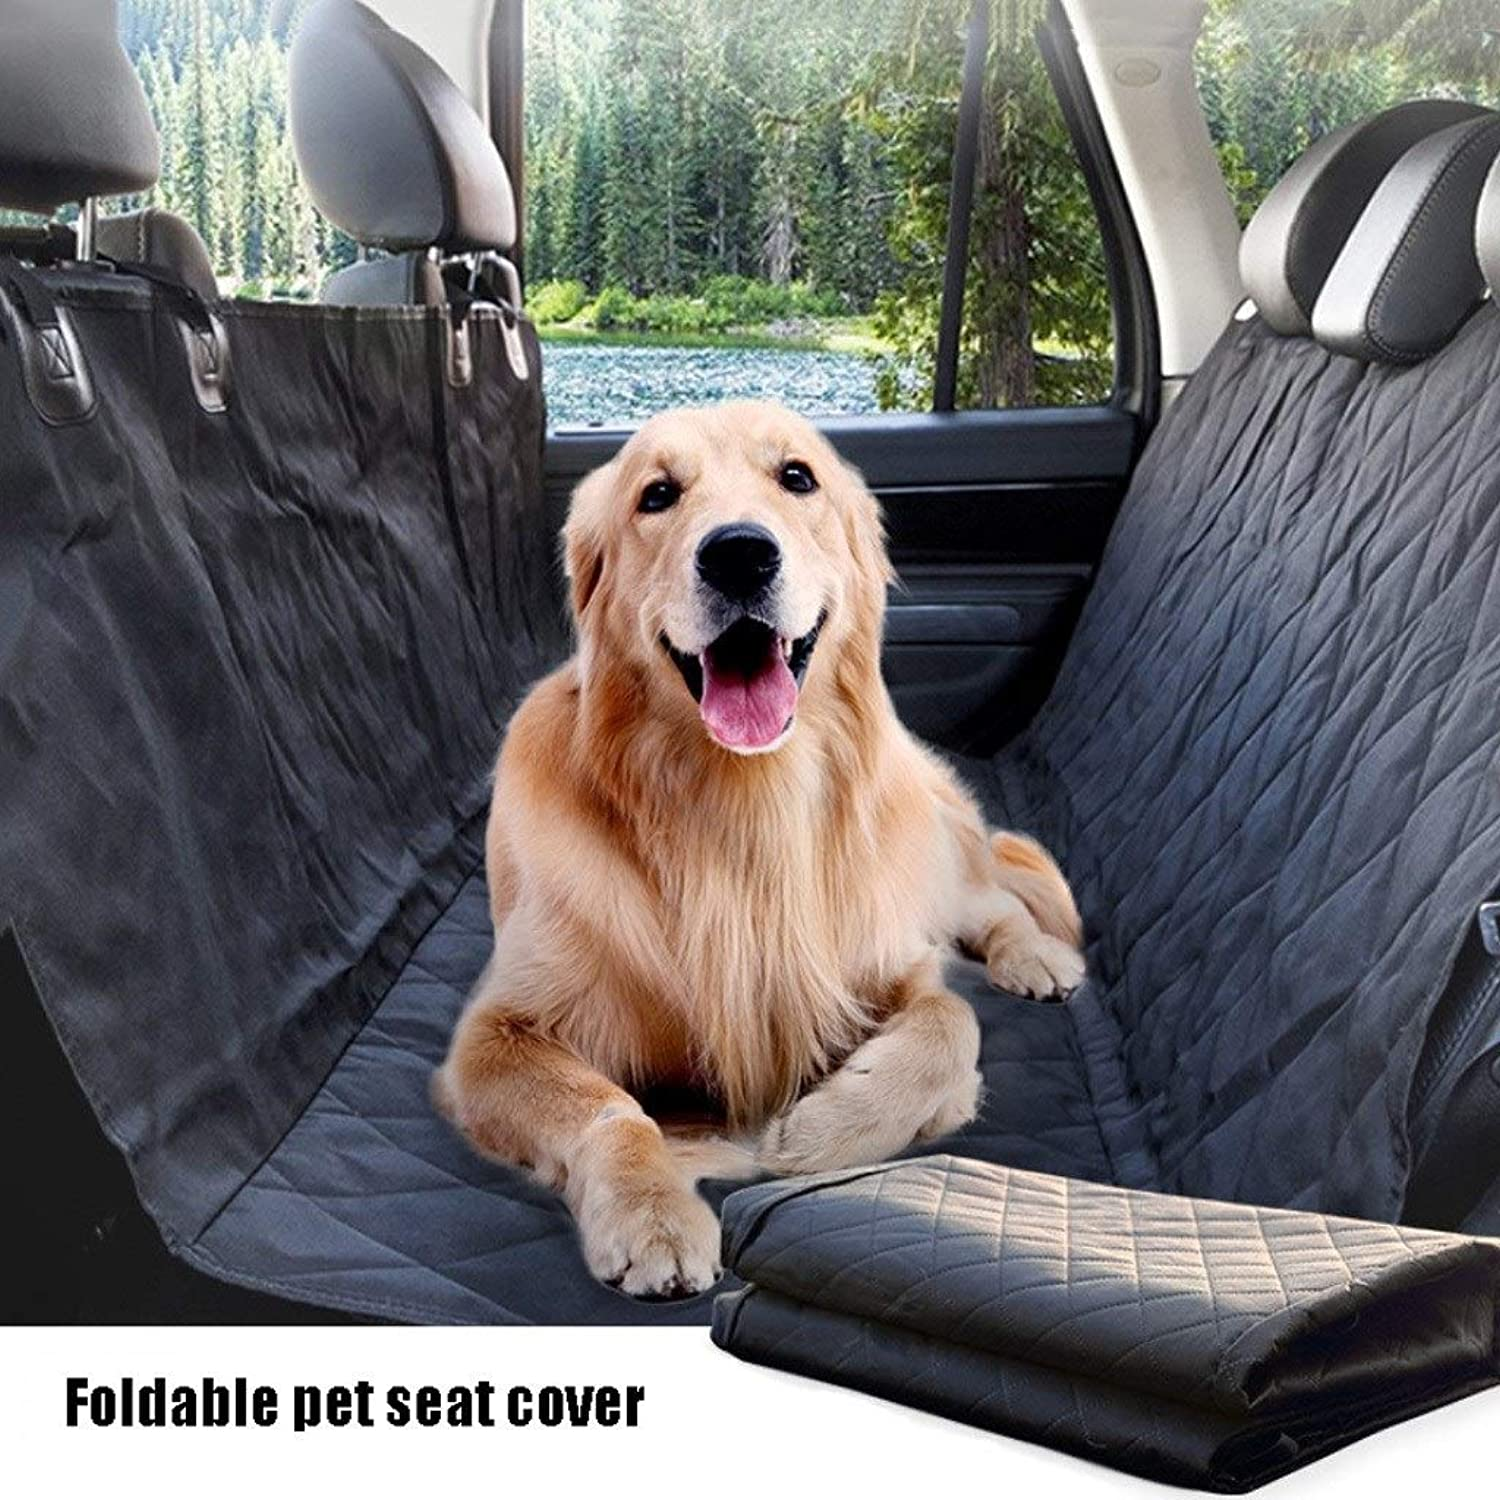 GDZ Dog Car Back Seat Cover Hammock Waterproof, Large Size Universal for Most Cars, Trucks and SUV Duty Scratch Proof Nonslip Durable Soft Pet Car Seat Cover (Design   Without side flaps)